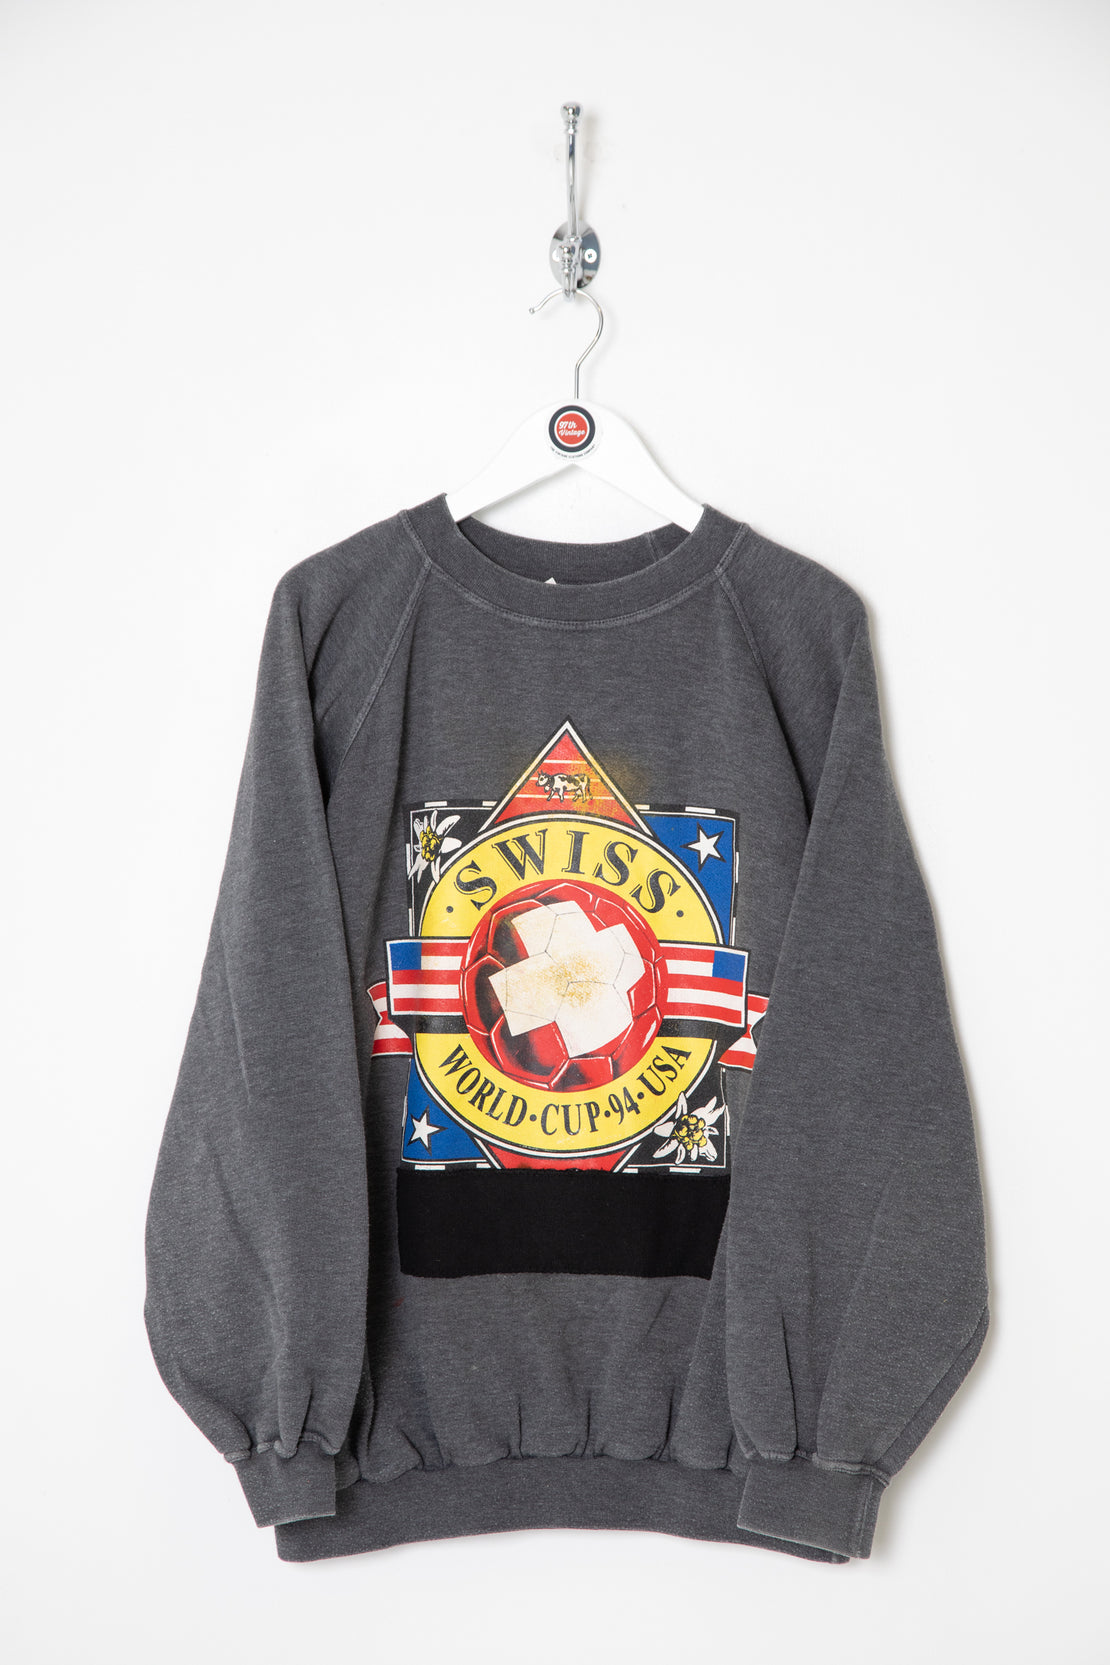 1994 World Cup Sweatshirt (L)